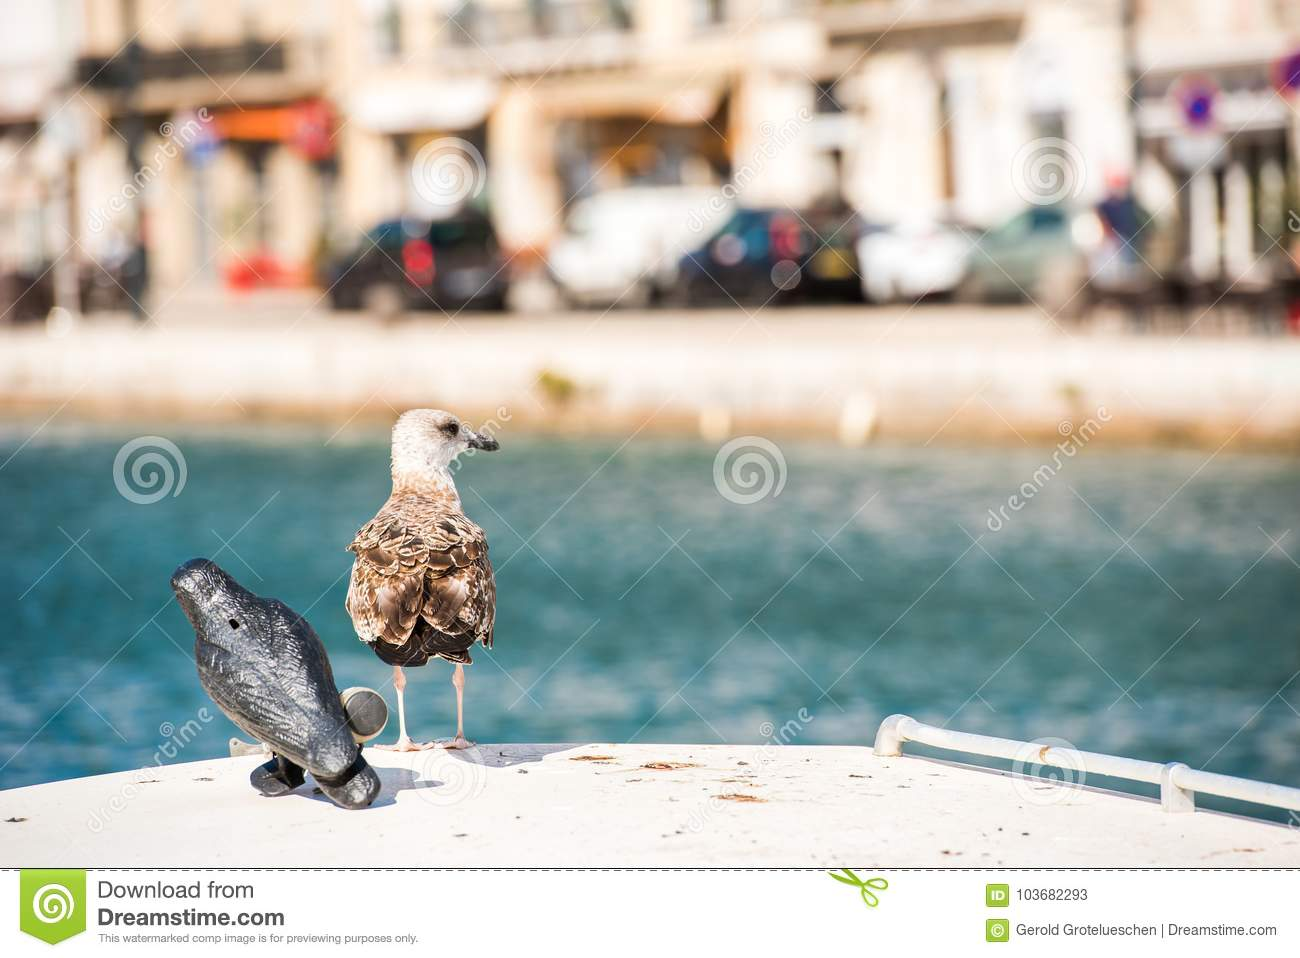 Seagull on the background of the royal canal in Sete, Languedoc Roussillon, France. Copy space for text.